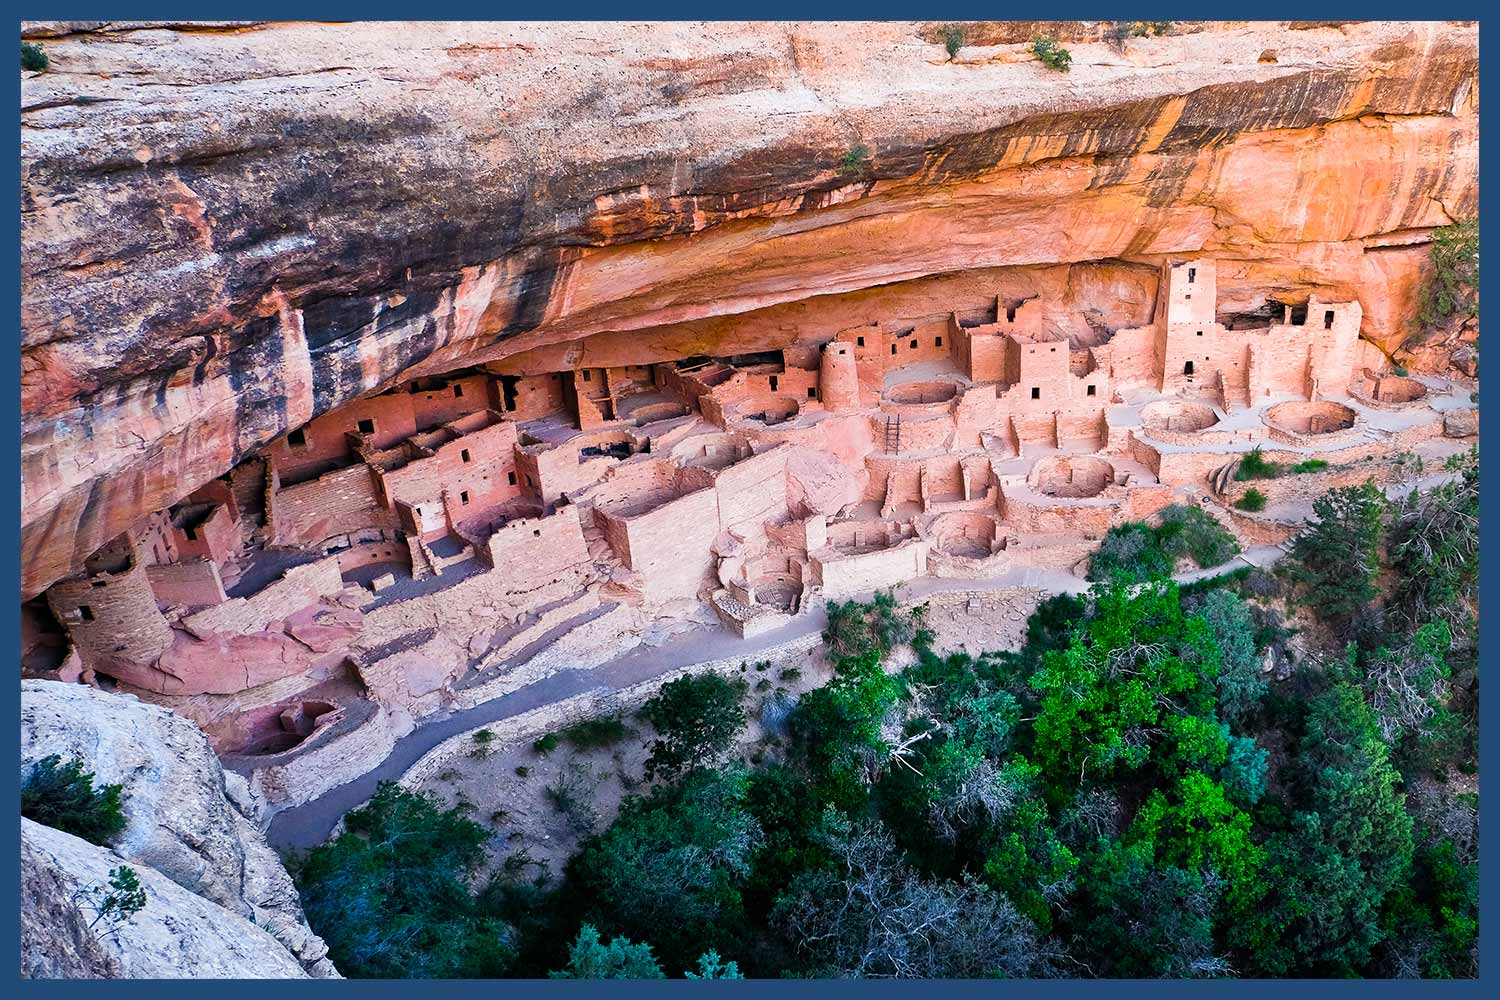 Cliff Palace Ancestral Puebloan Dwellings in Colorado